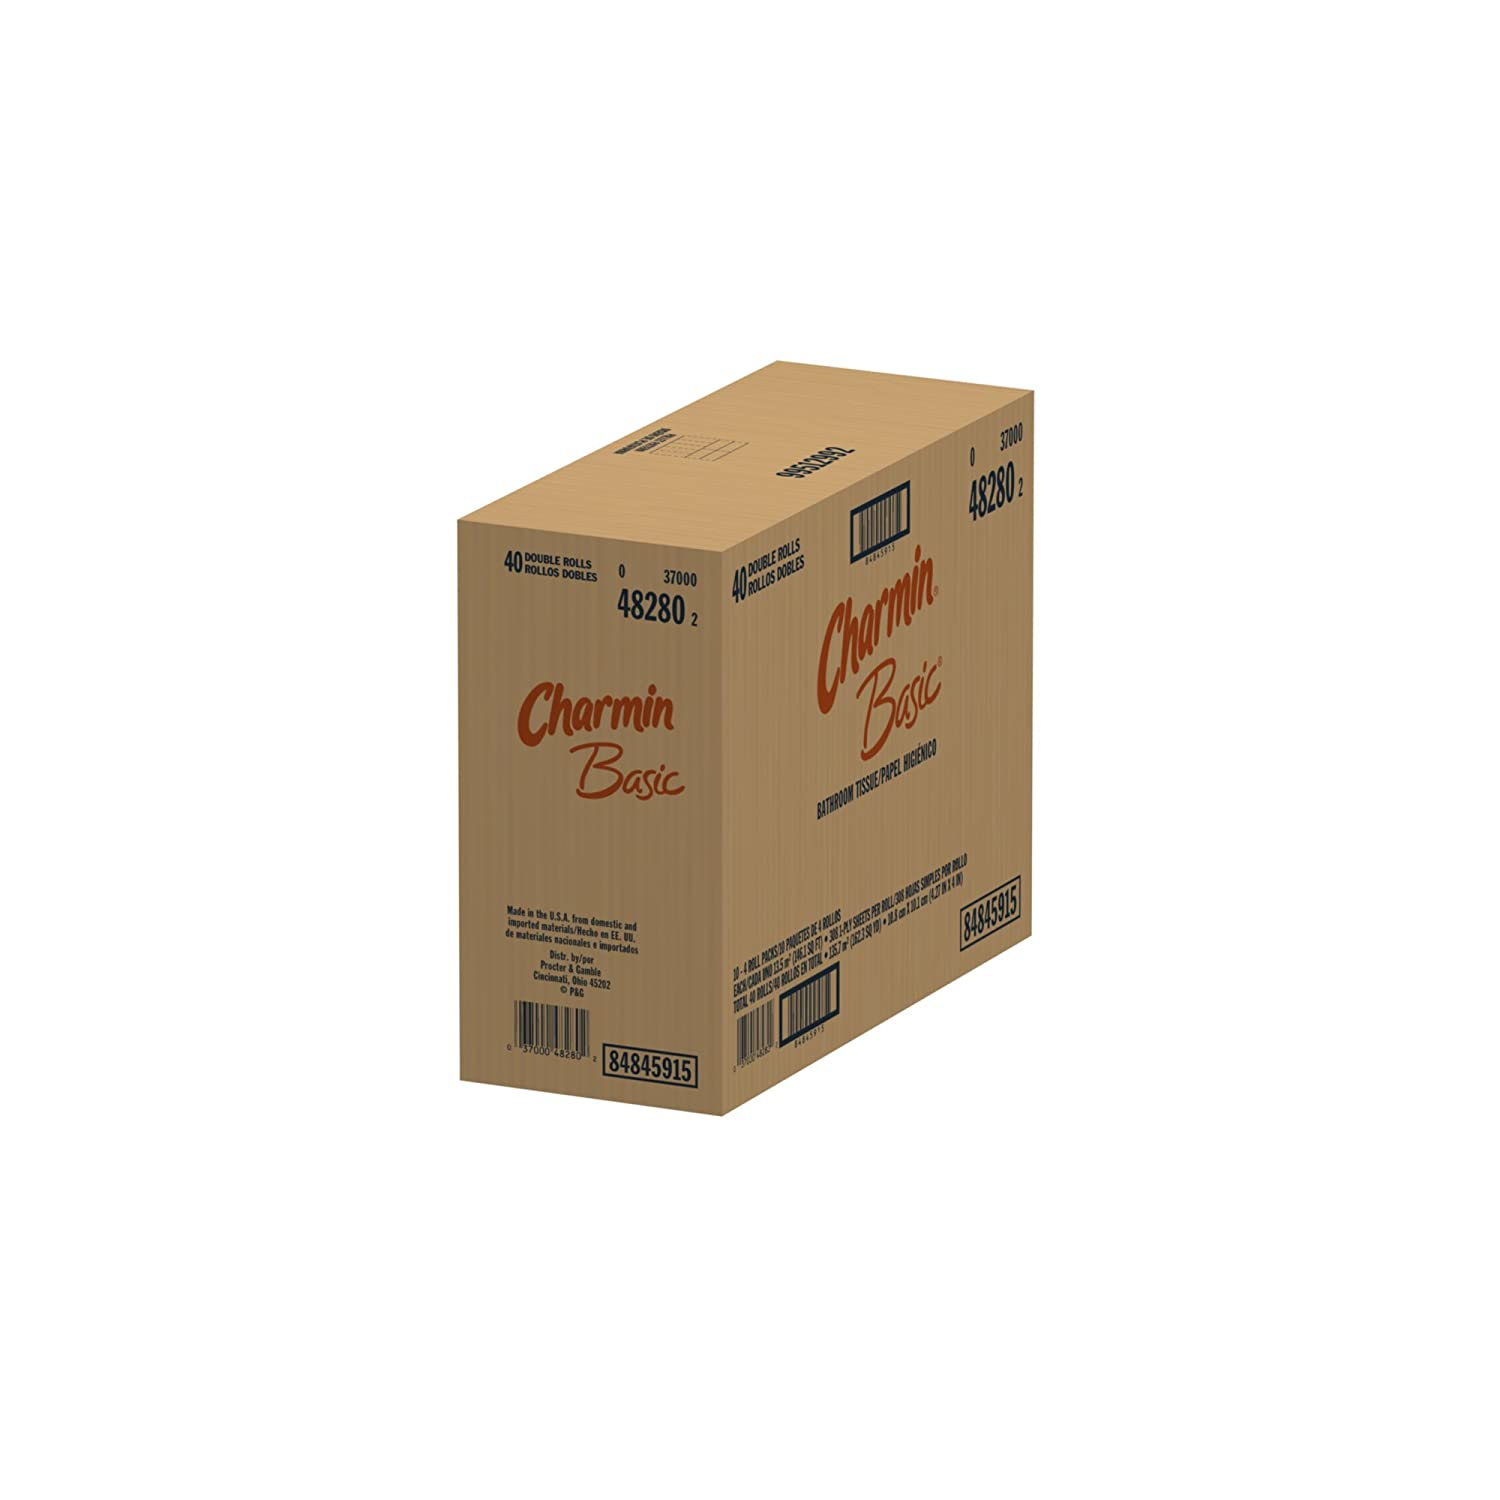 tpcache Amazon.com: Charmin Basic, Double Rolls, 4 Count Pack (Pack of 10) 40 Total  Rolls: Health & Personal Care